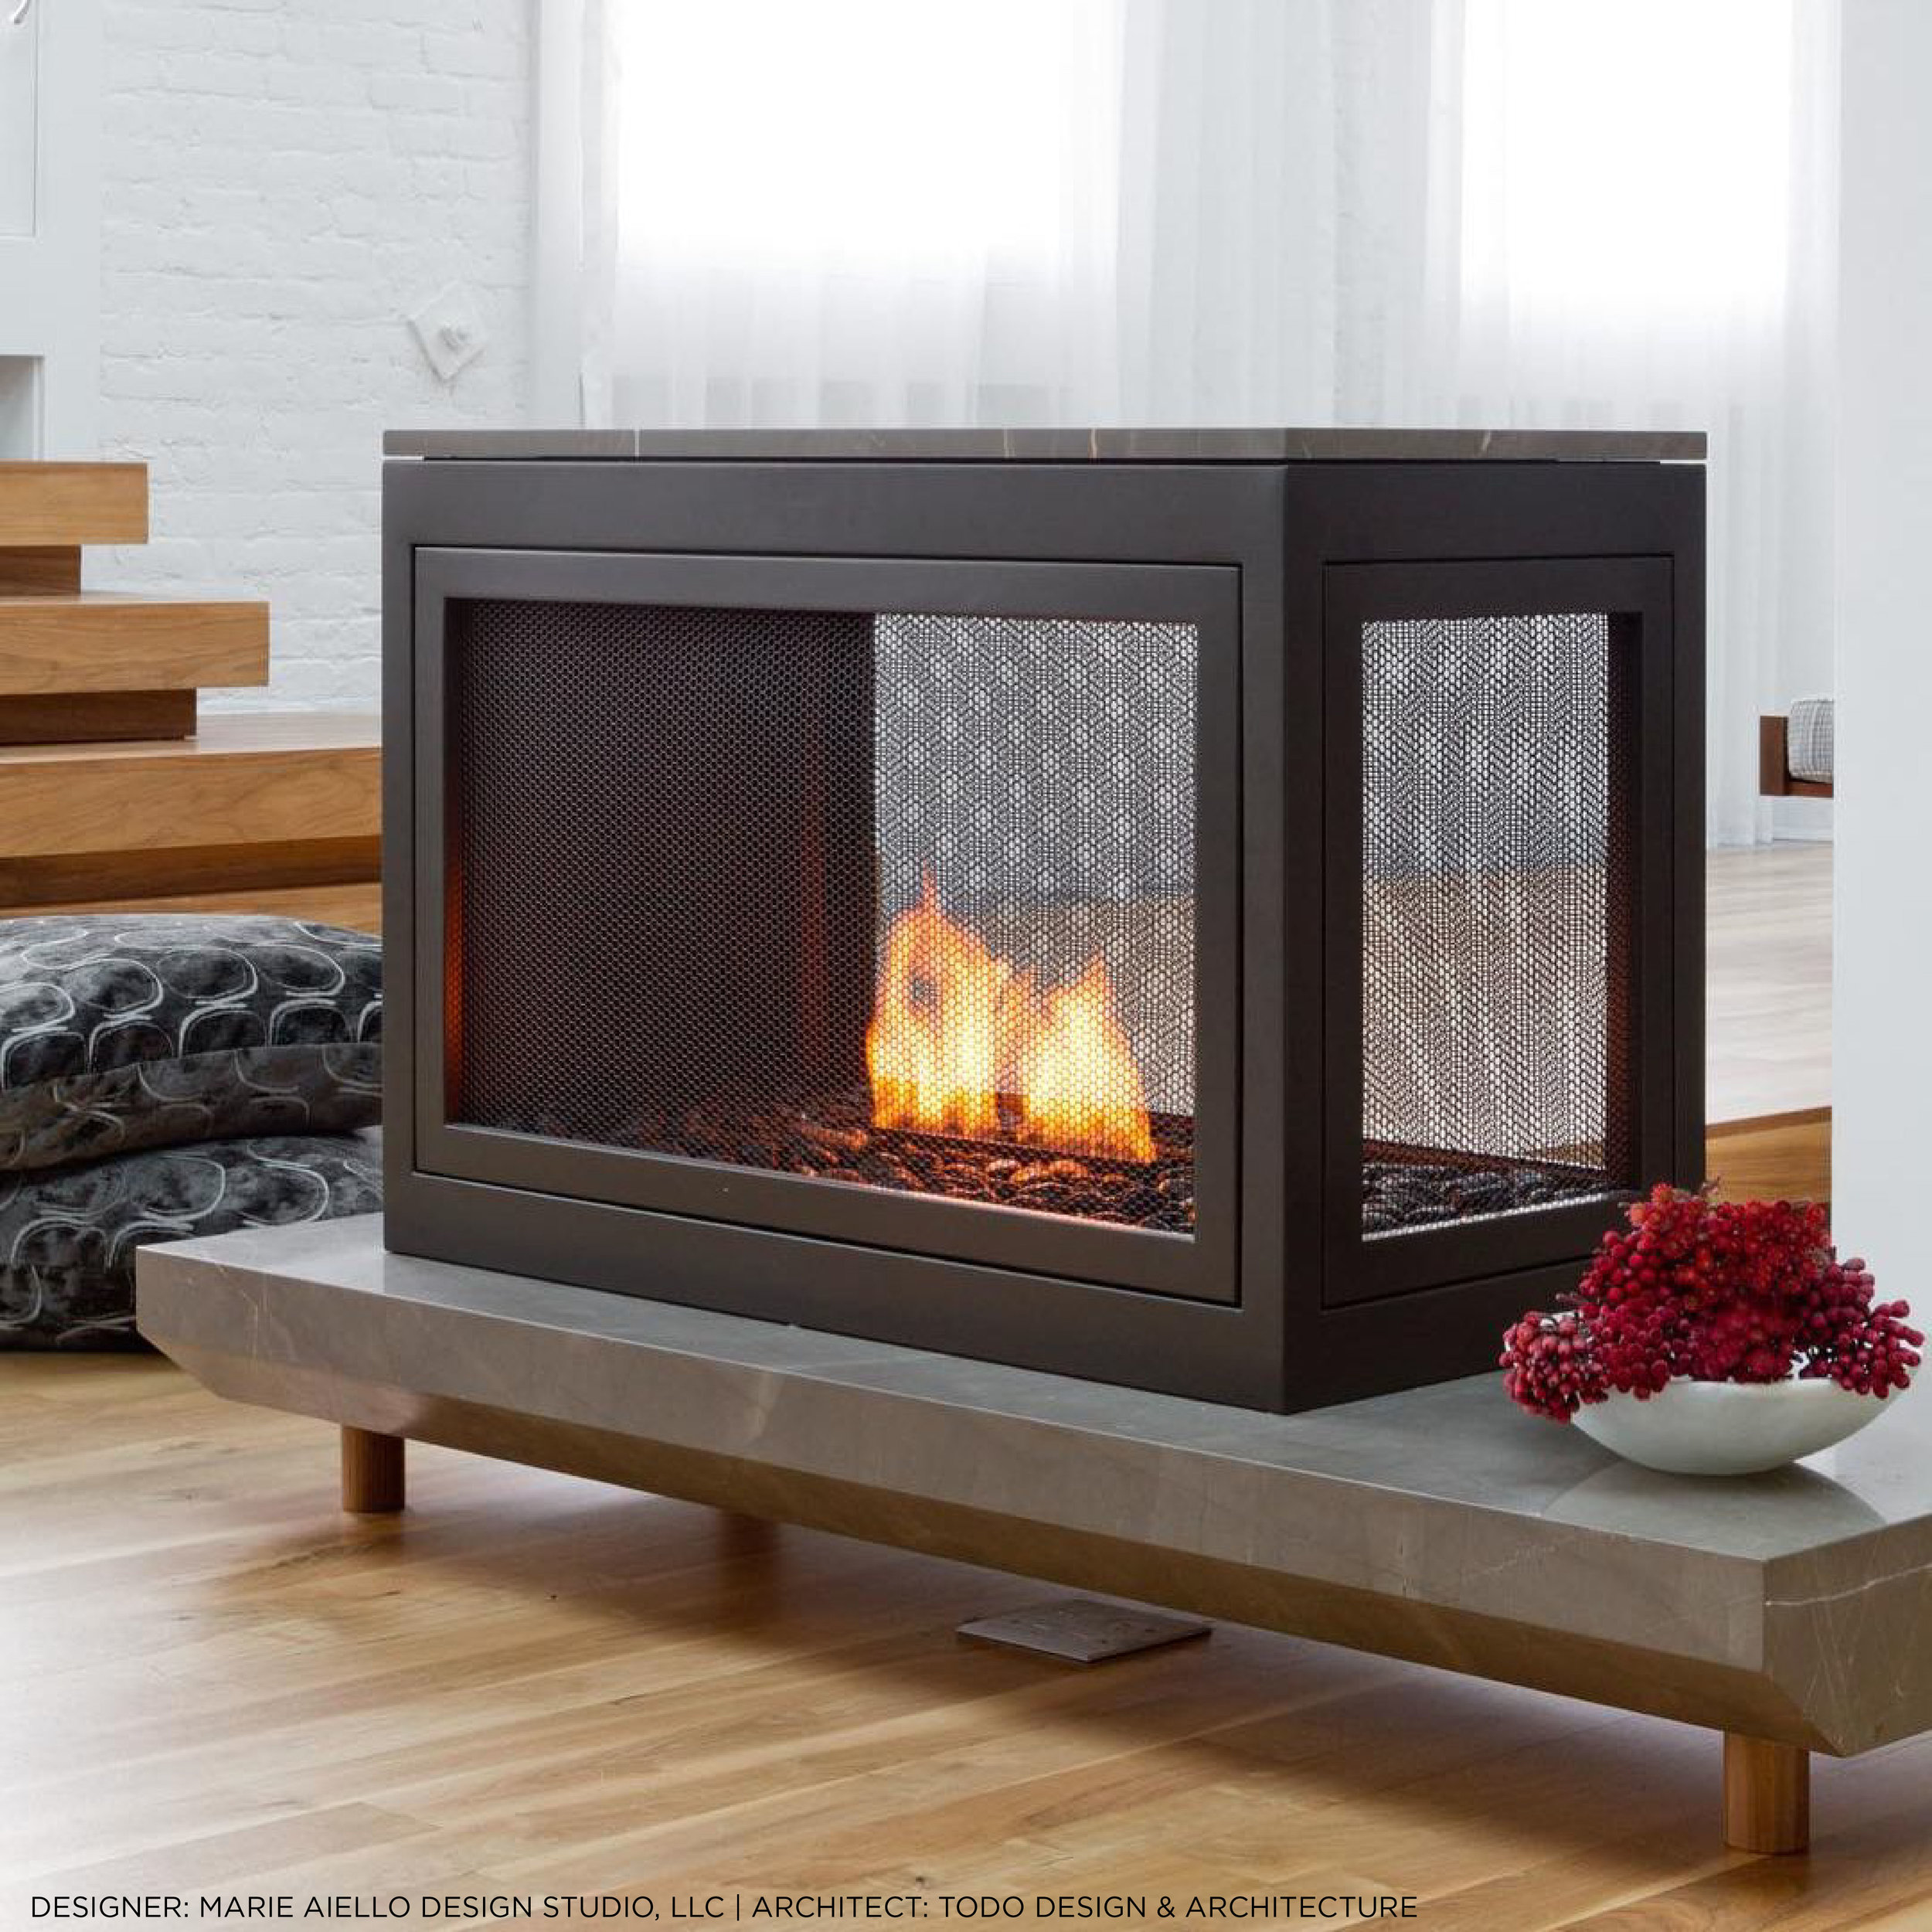 Alcohol Fuel Fireplace Hearthcabinet Fireplace Blog Fireplace Design Fireplace